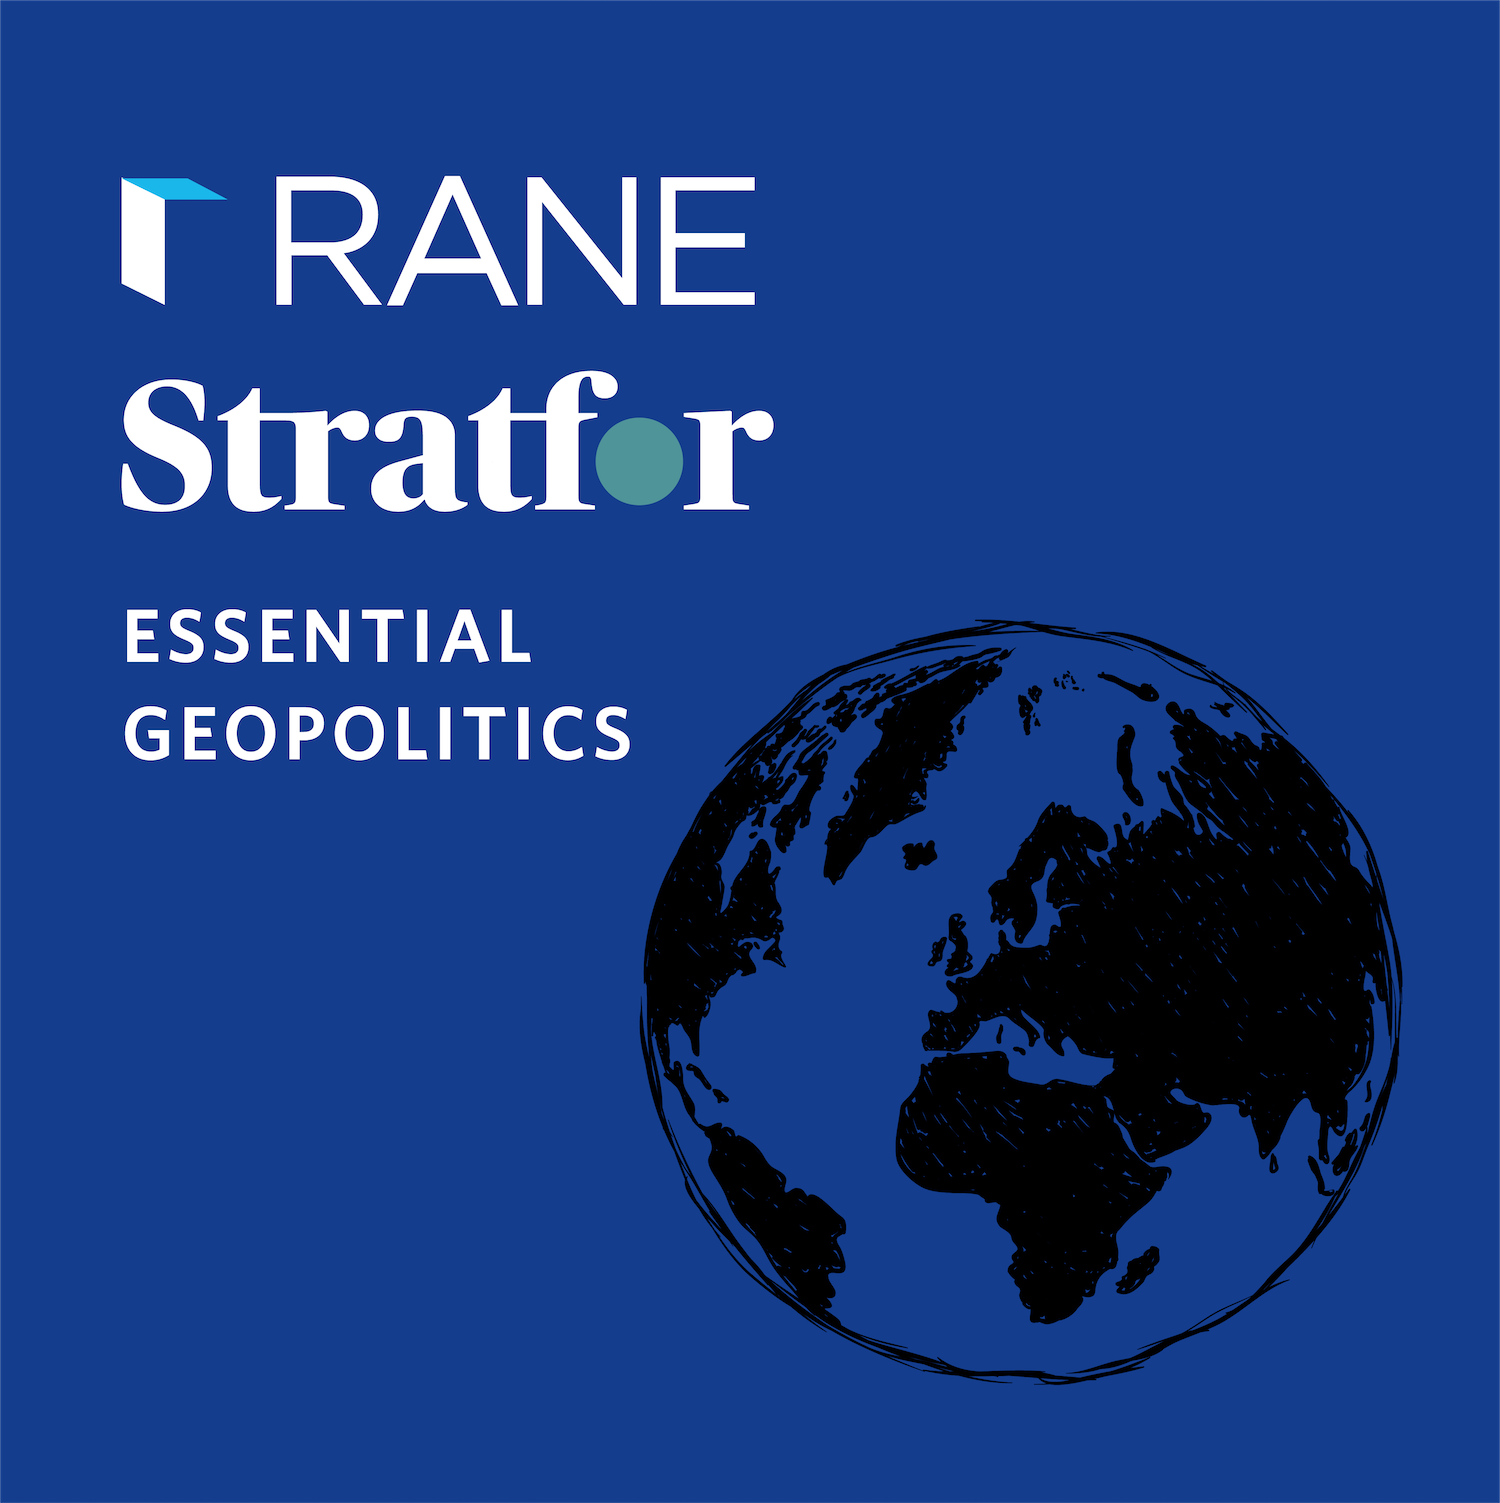 Essential Geopolitics: Political and Natural Disasters Beset Haiti